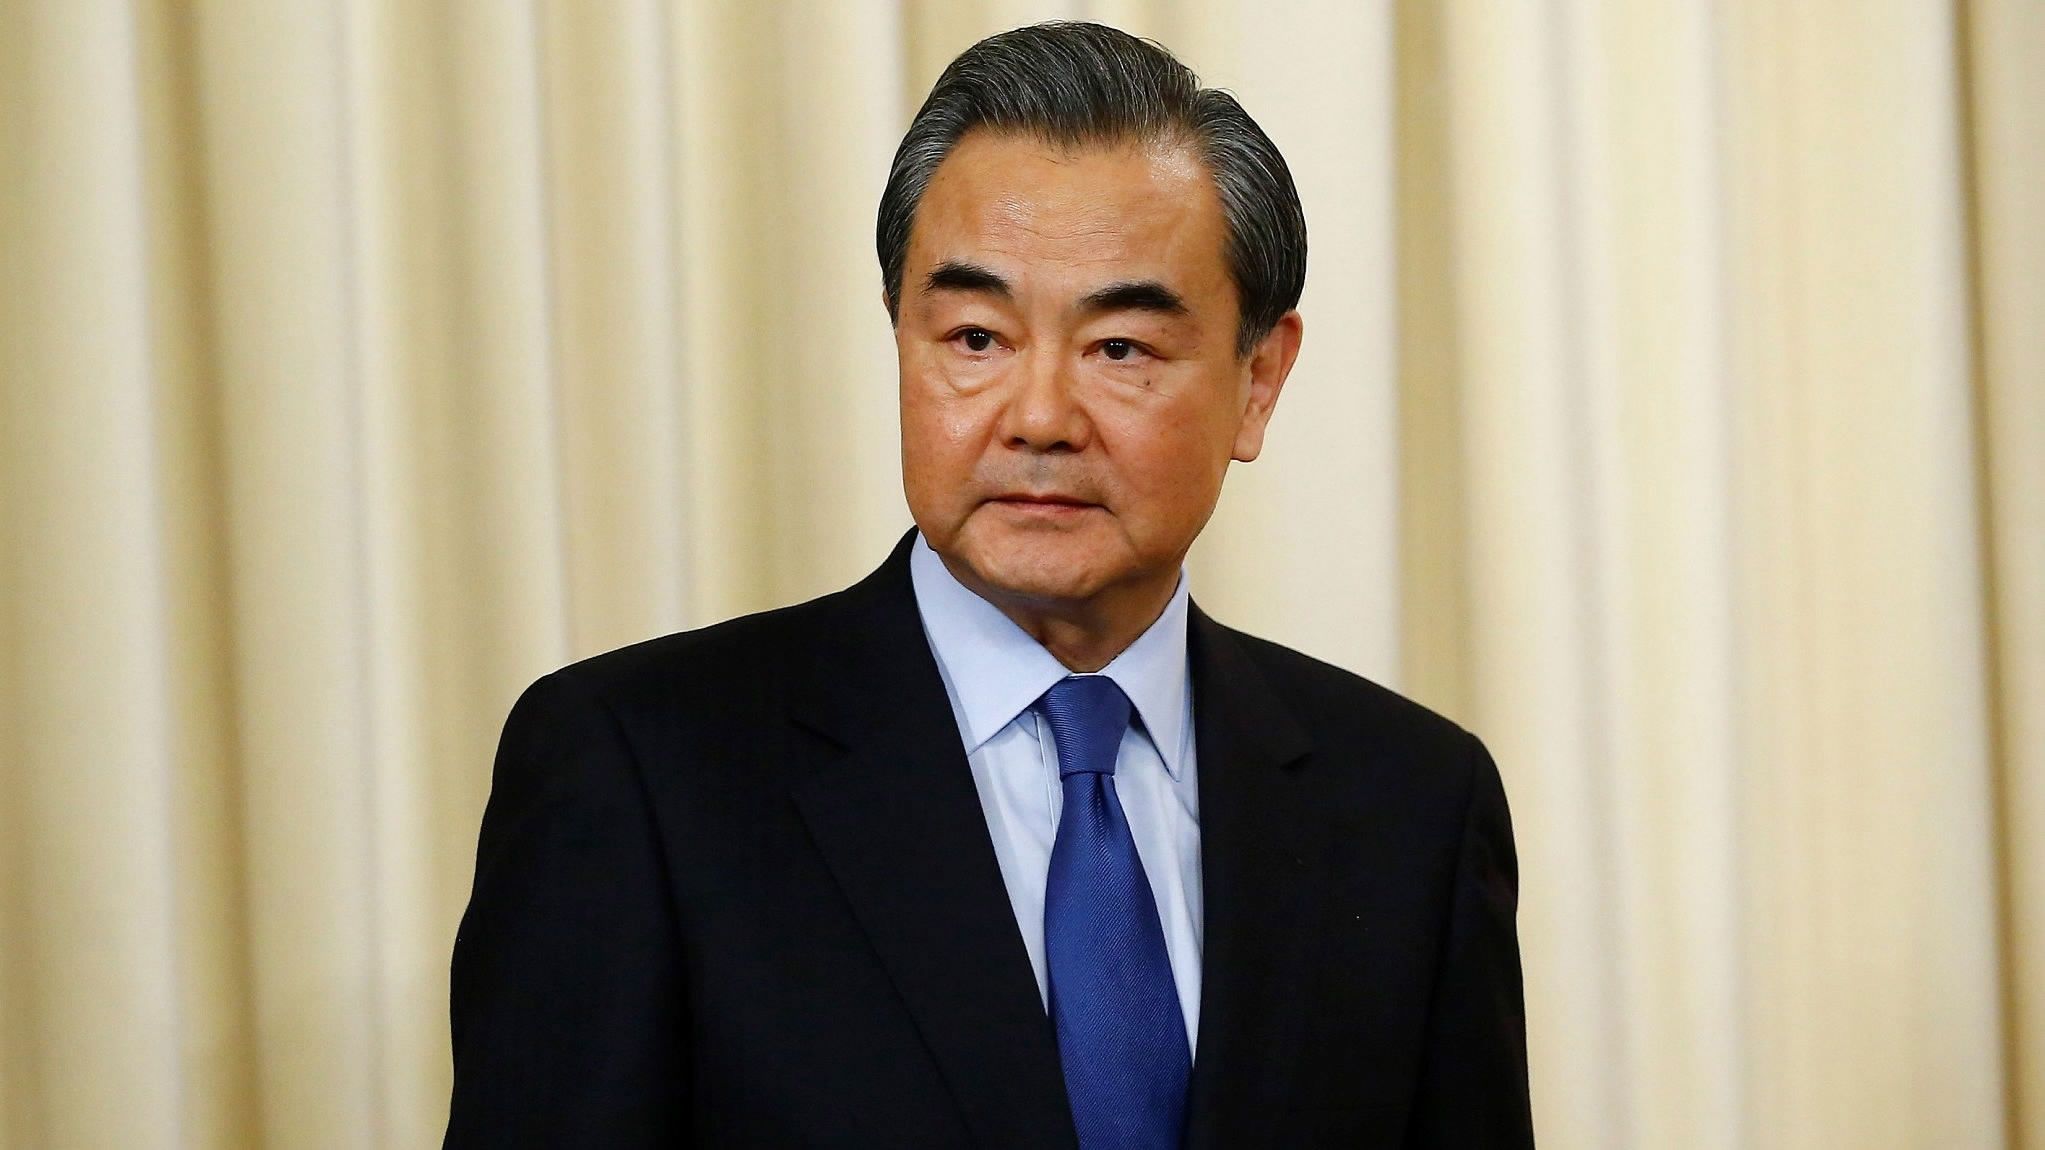 Chinese Foreign Minister Wang Yi to visit US